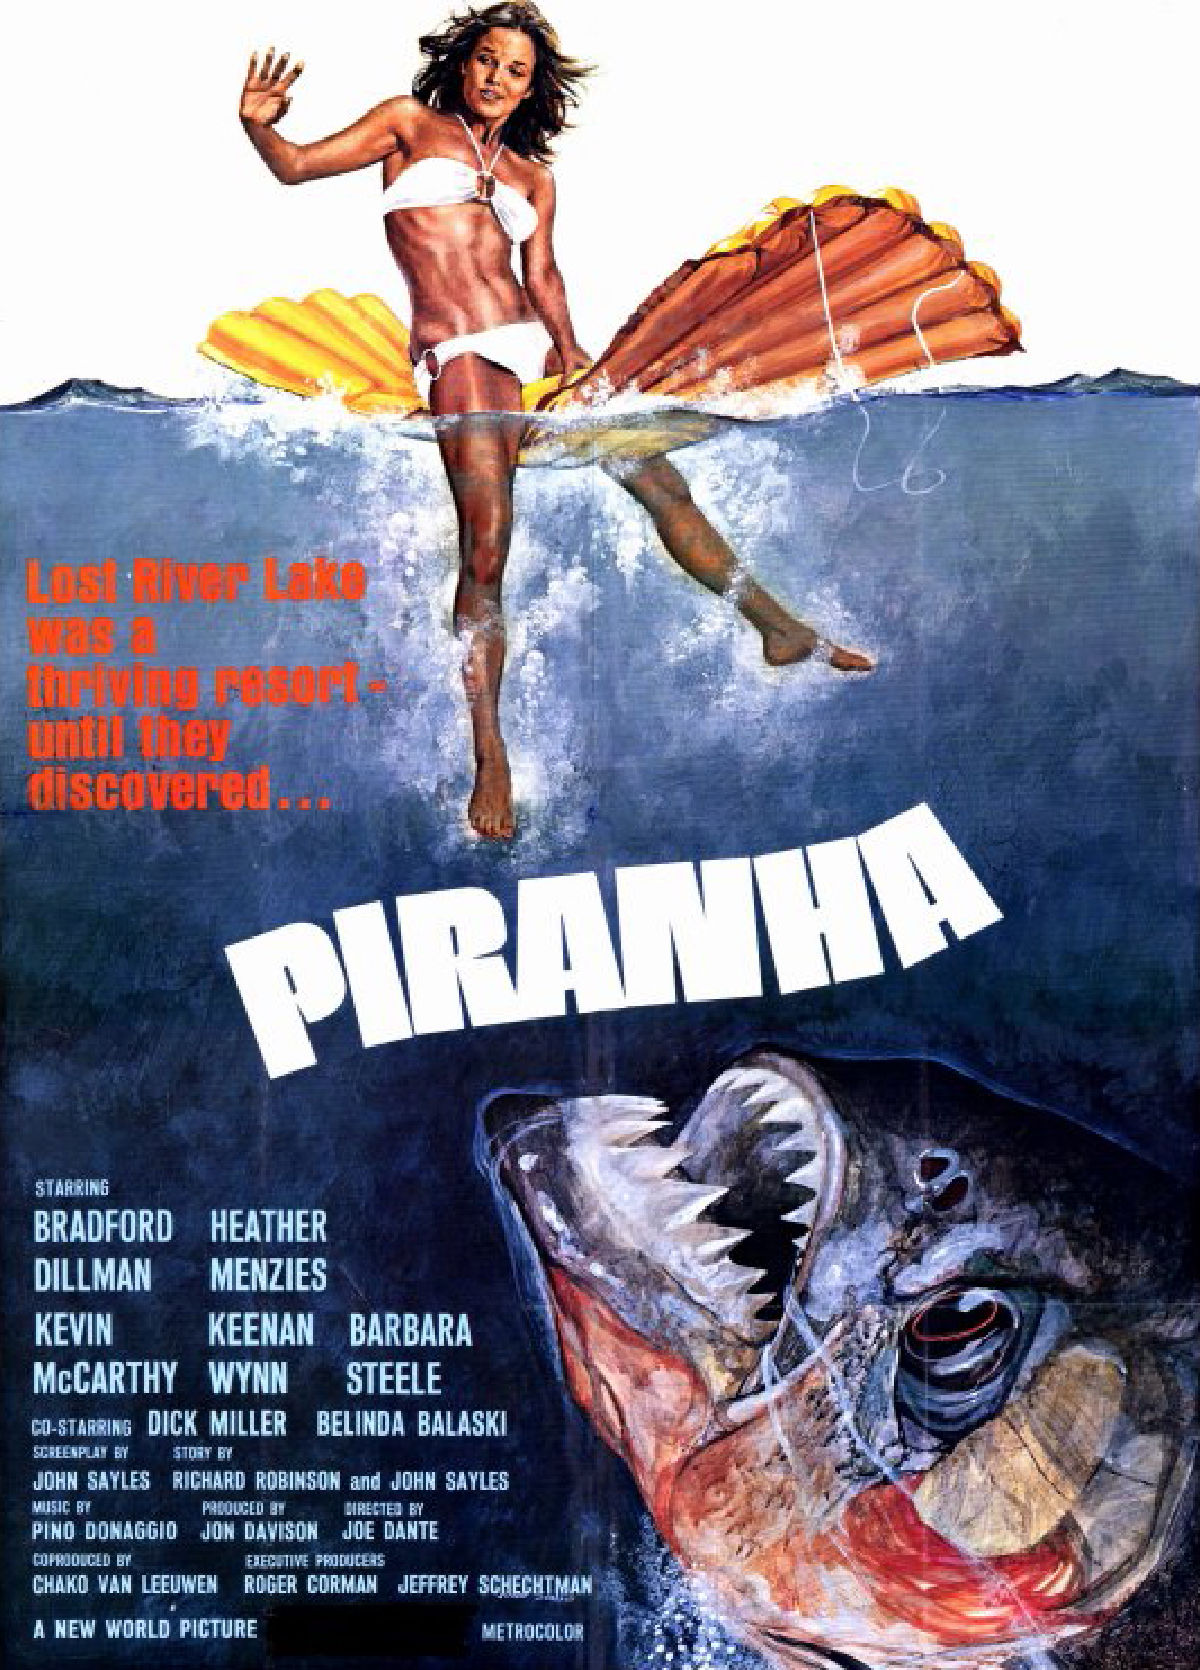 'Piranha' movie poster